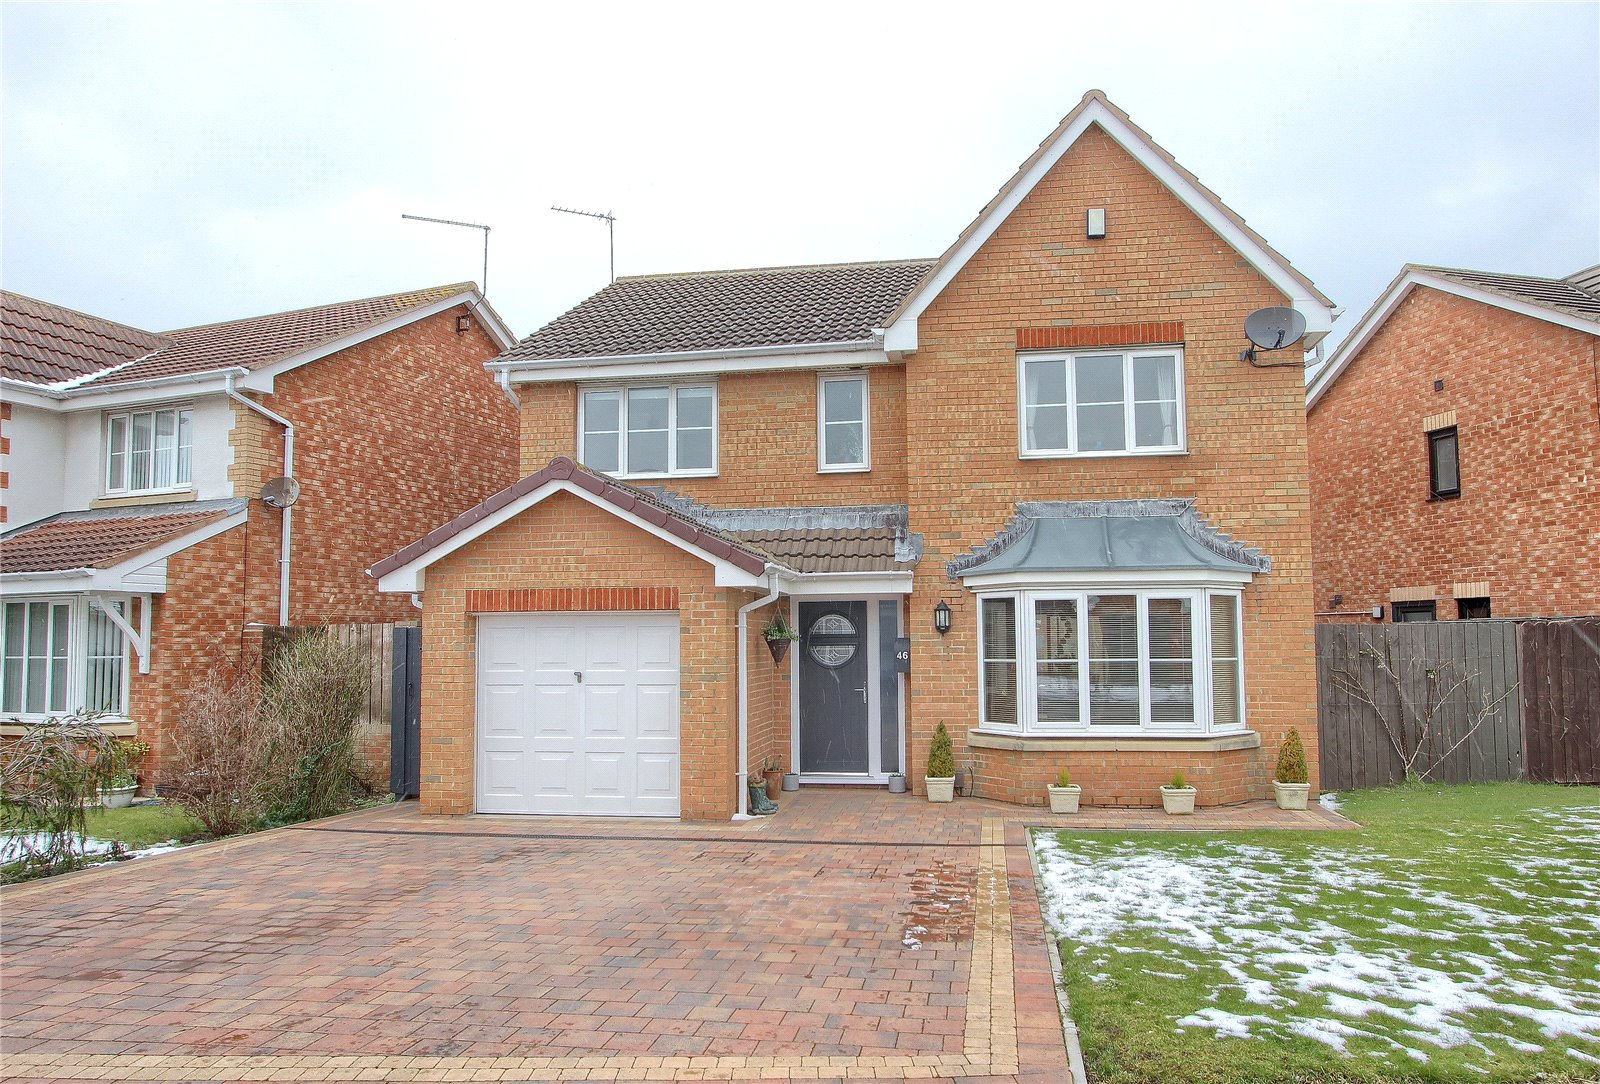 4 bed house for sale in Torcross Way, Redcar 1